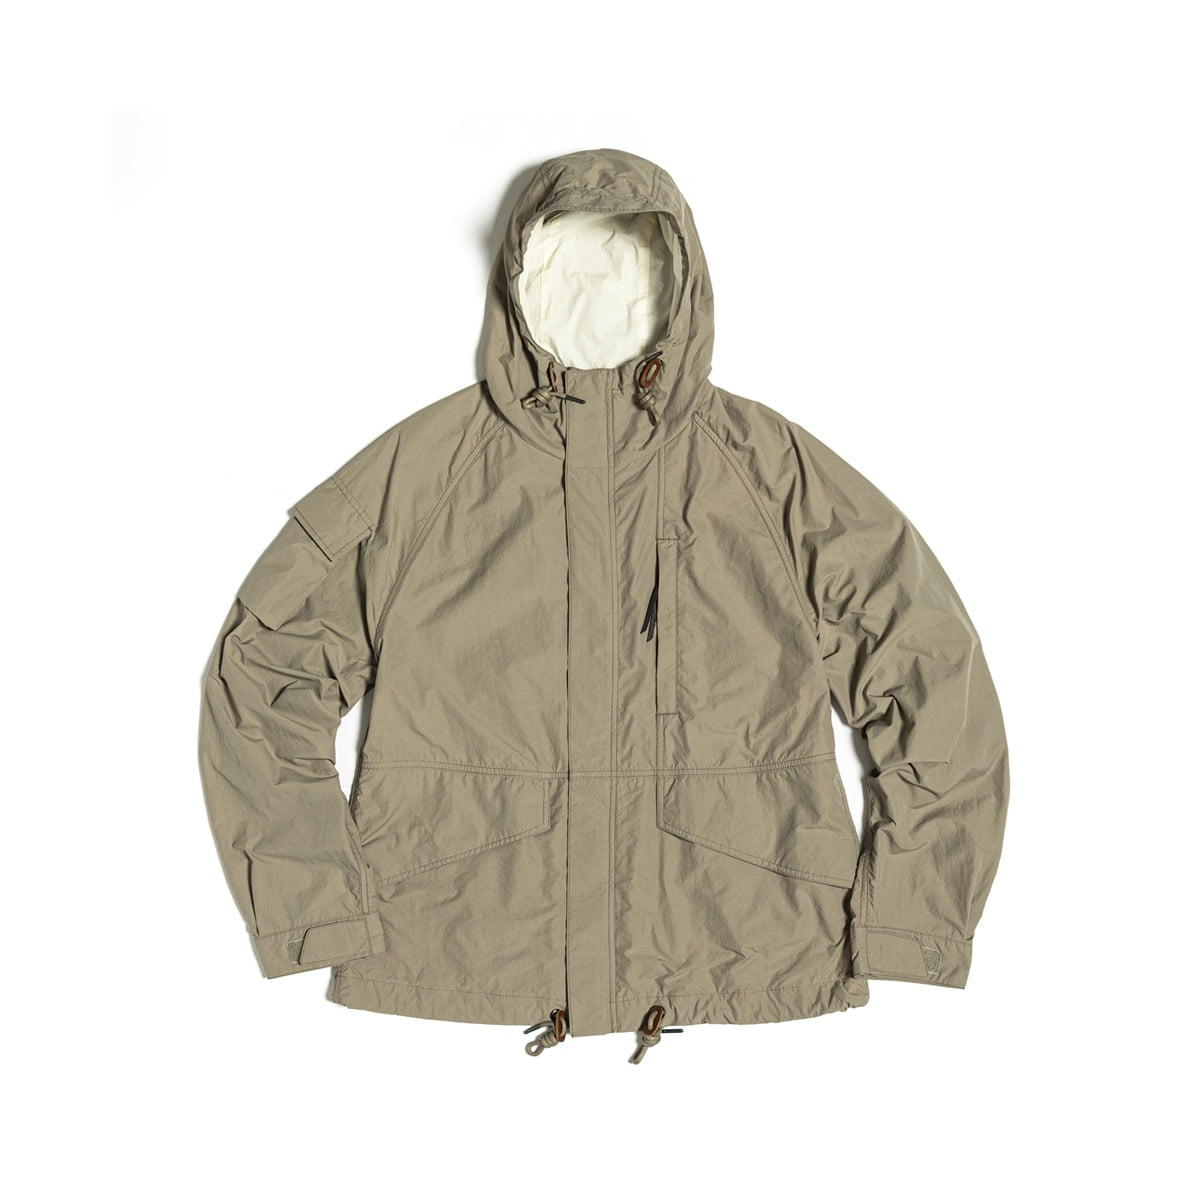 [EASTLOGUE] PROTECTIVE FIELD PARKA 'BEIGE WASHER'